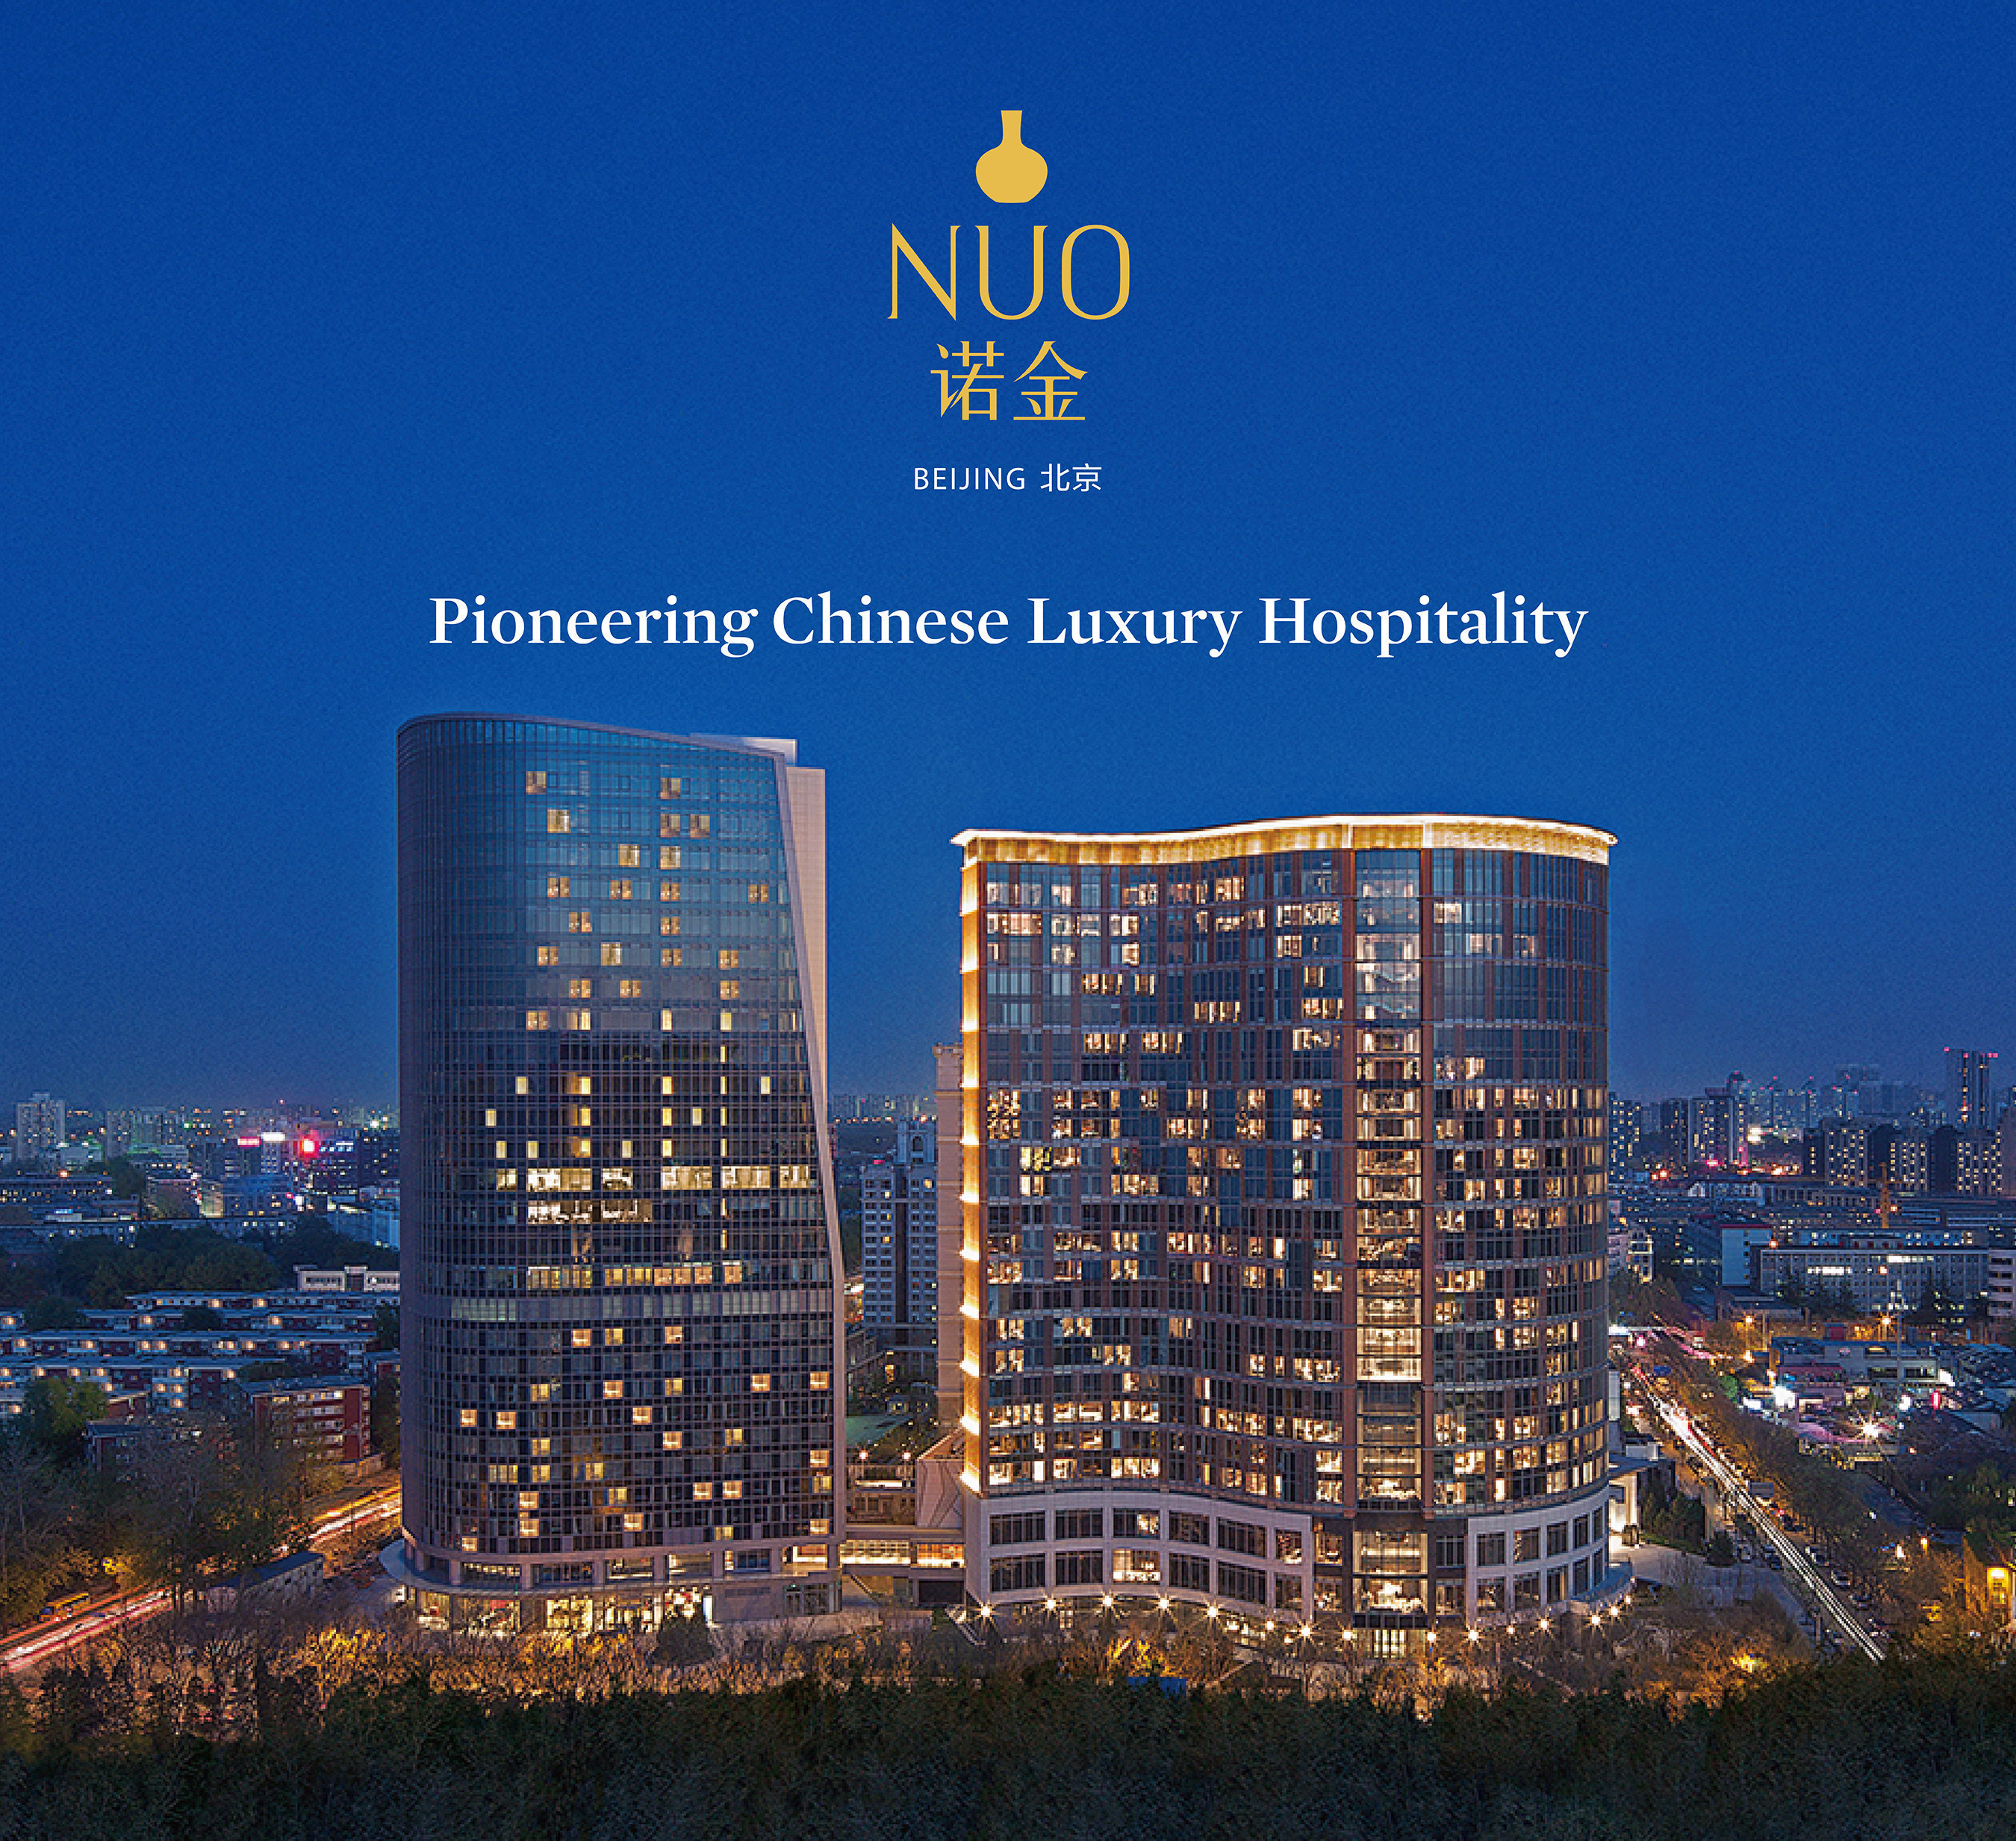 Chinas Capital Welcomes The First Nuo Hotel Featuring Modern Ming Design And Contemporary Art